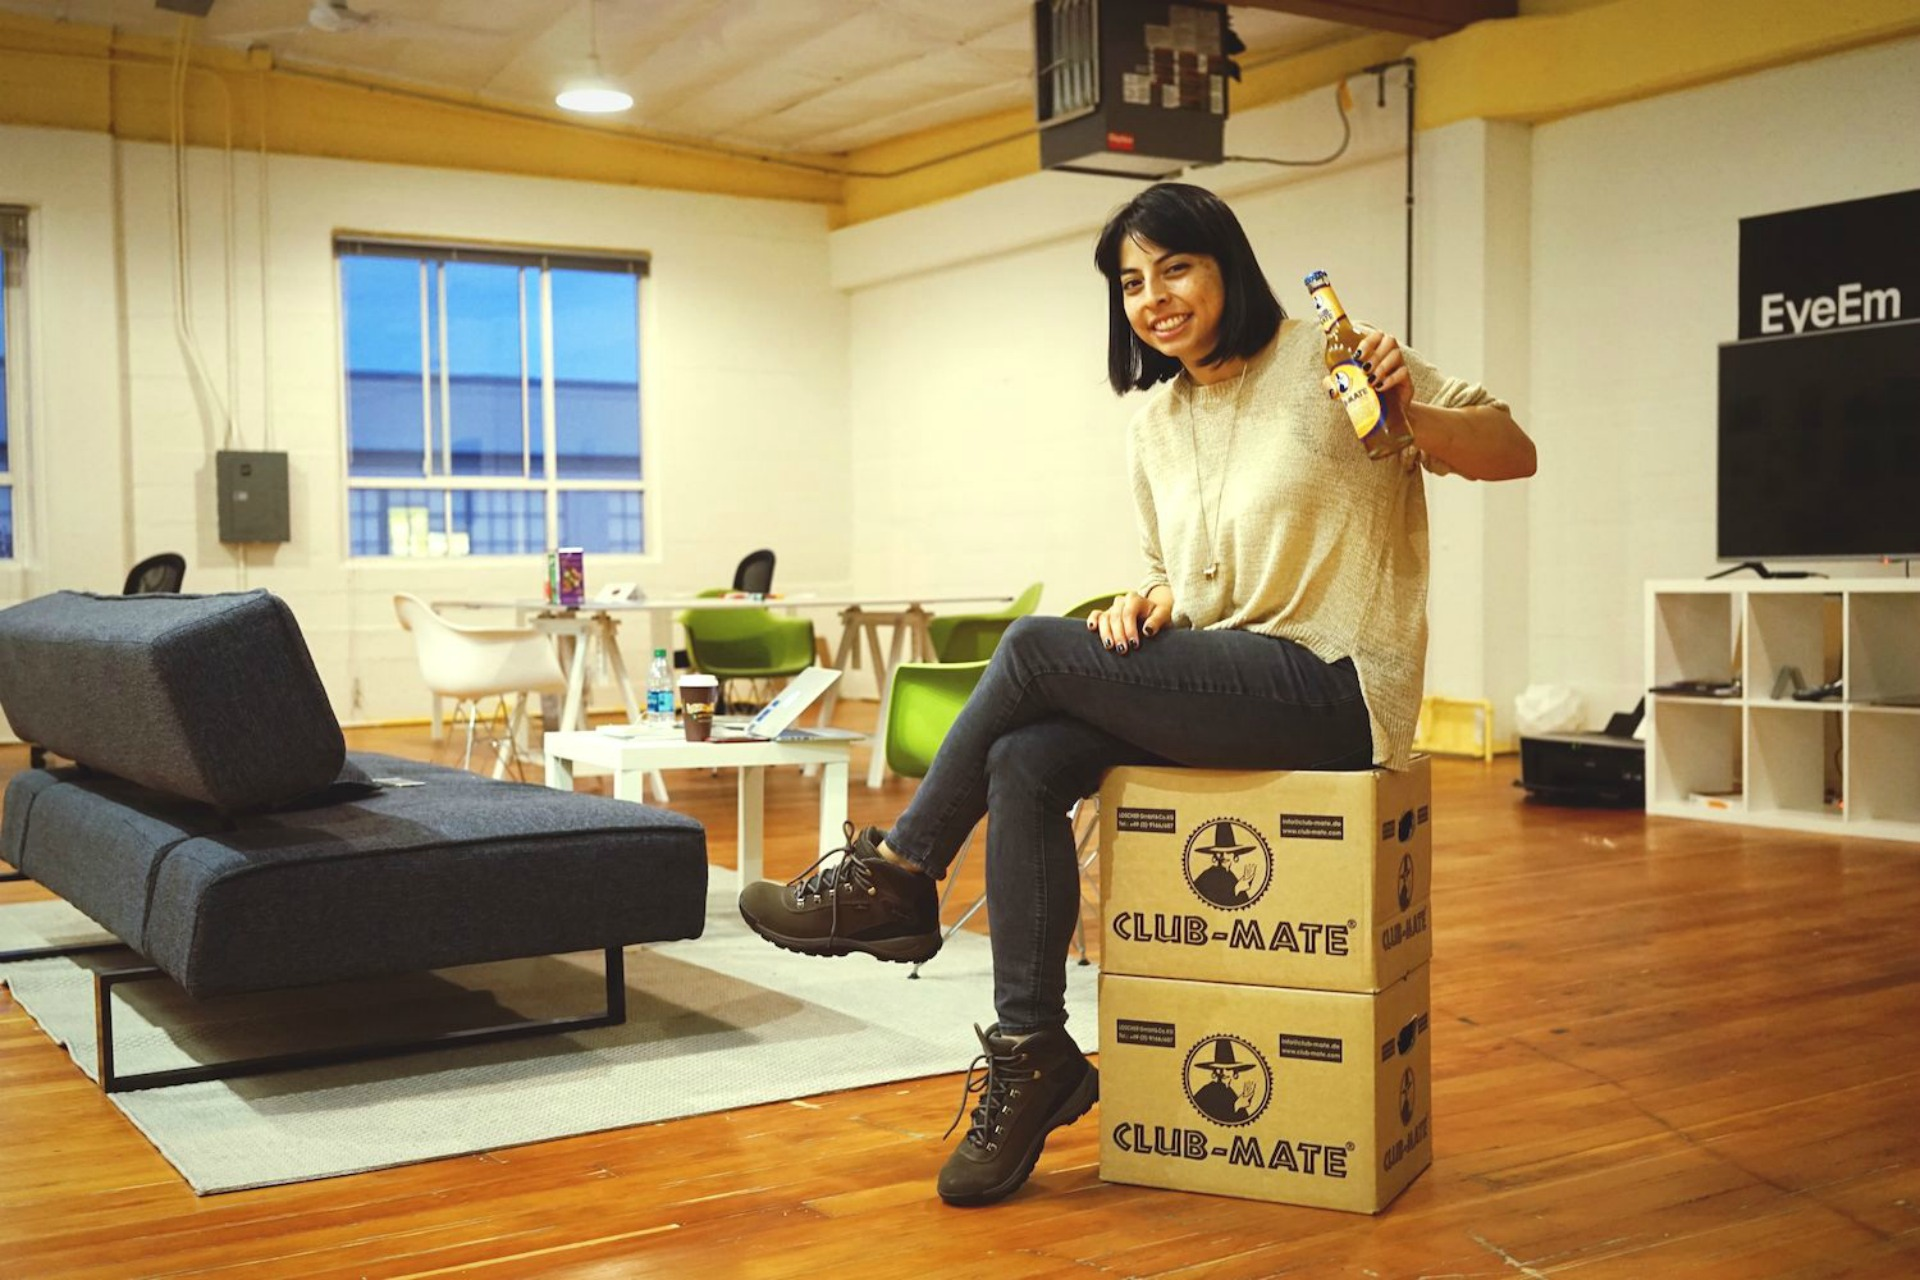 Lisbeth Ortega, EyeEm SF's blog editor with the company's stock's of Club Mate.